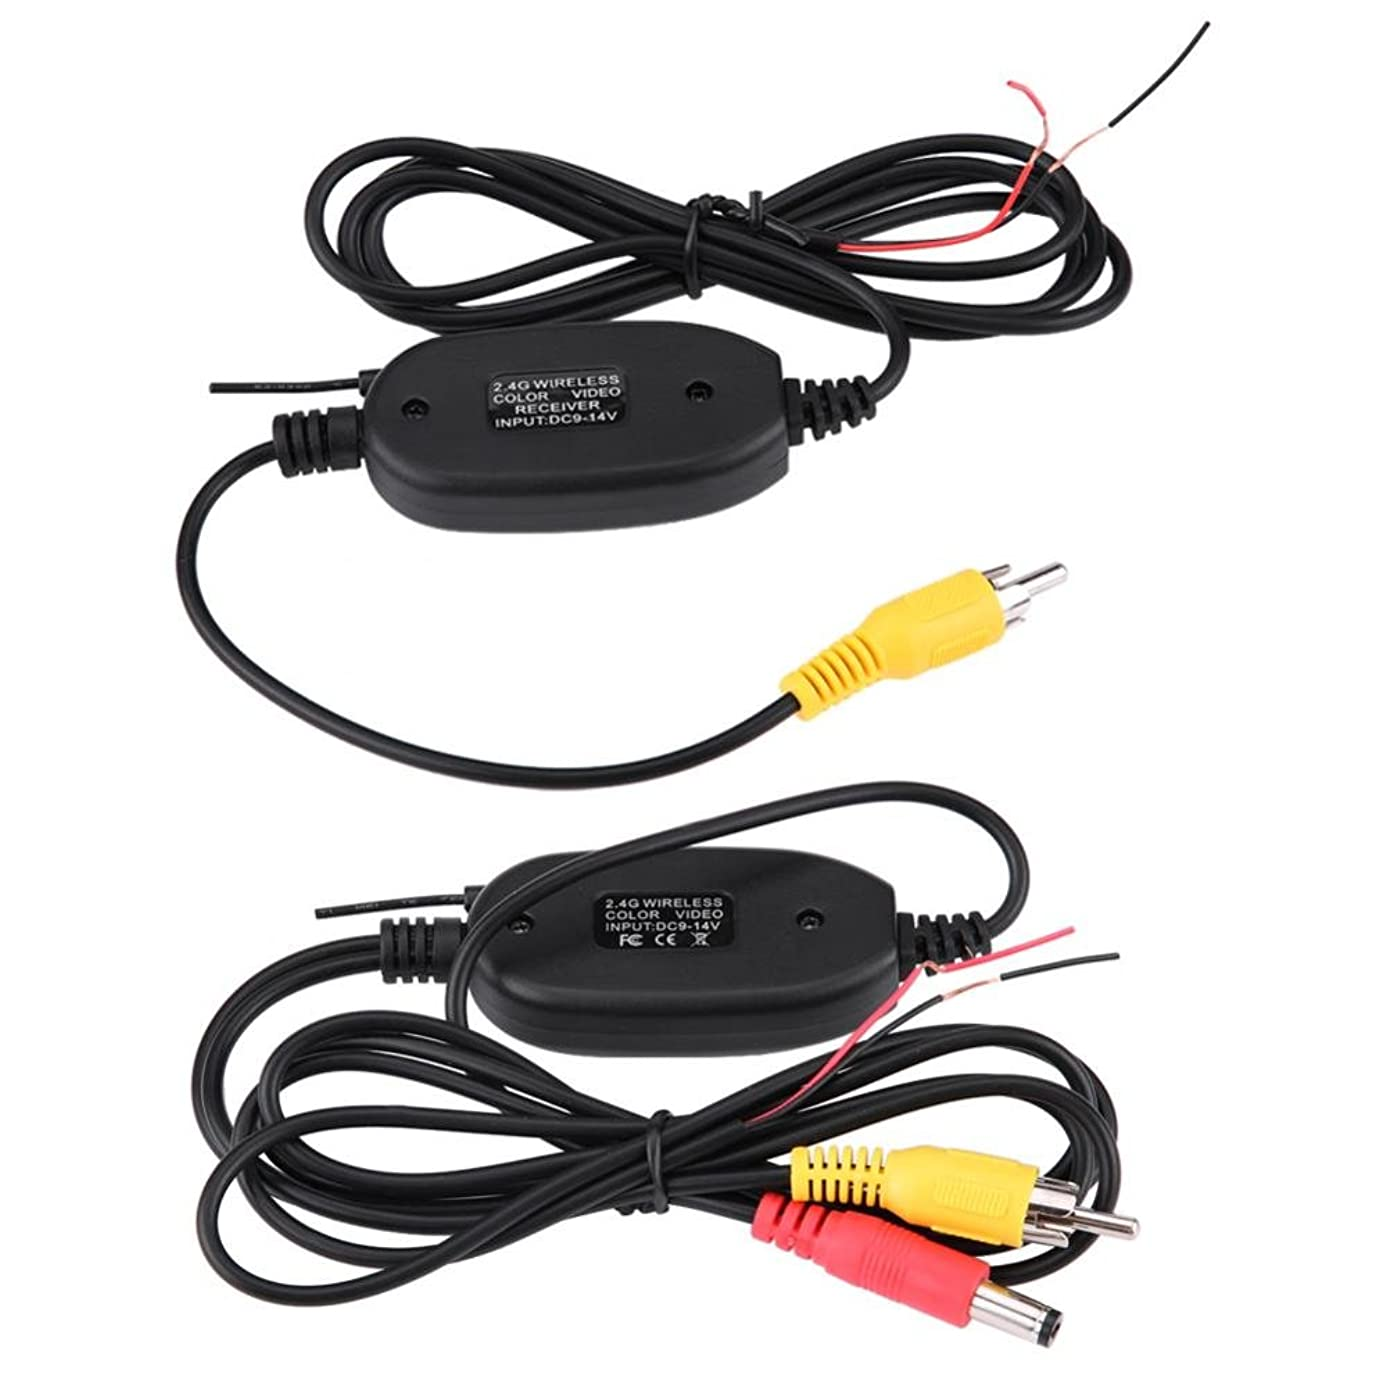 Transmitter Receiver, RCA Video 2.4Ghz Wireless Transmitter Receiver Kit 200mA Remote Controller Transmitter for Car Parking Backup Camera Monitor System